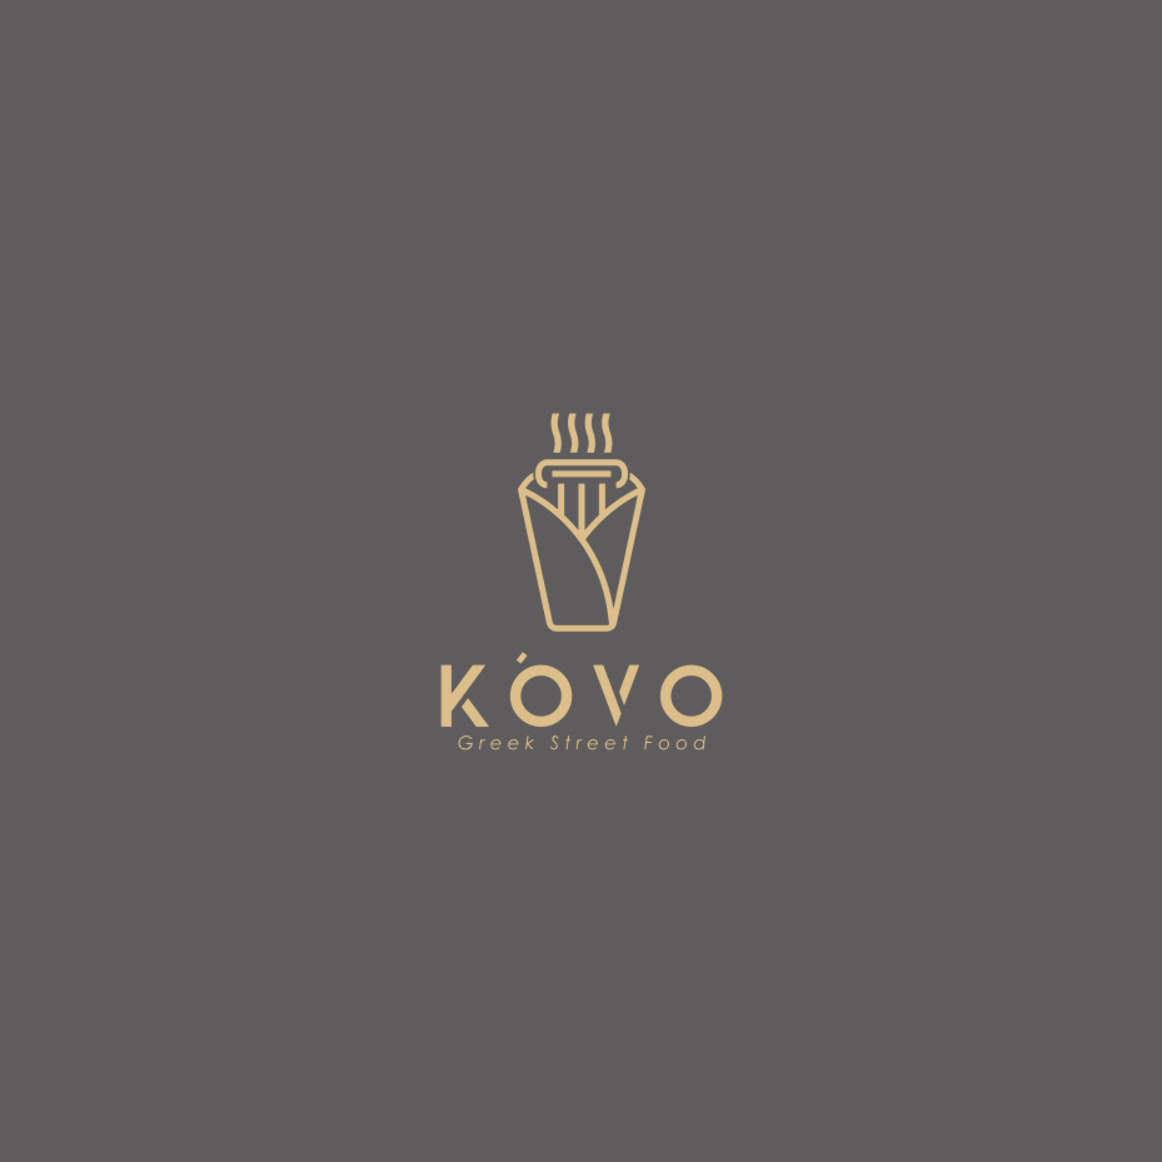 Kovo Greek Street Food Logo Design By Overmind This Awesome Minimalist Logo Design Was Created For A Food Truck If You Re Looking For Eye Catching Food Truc